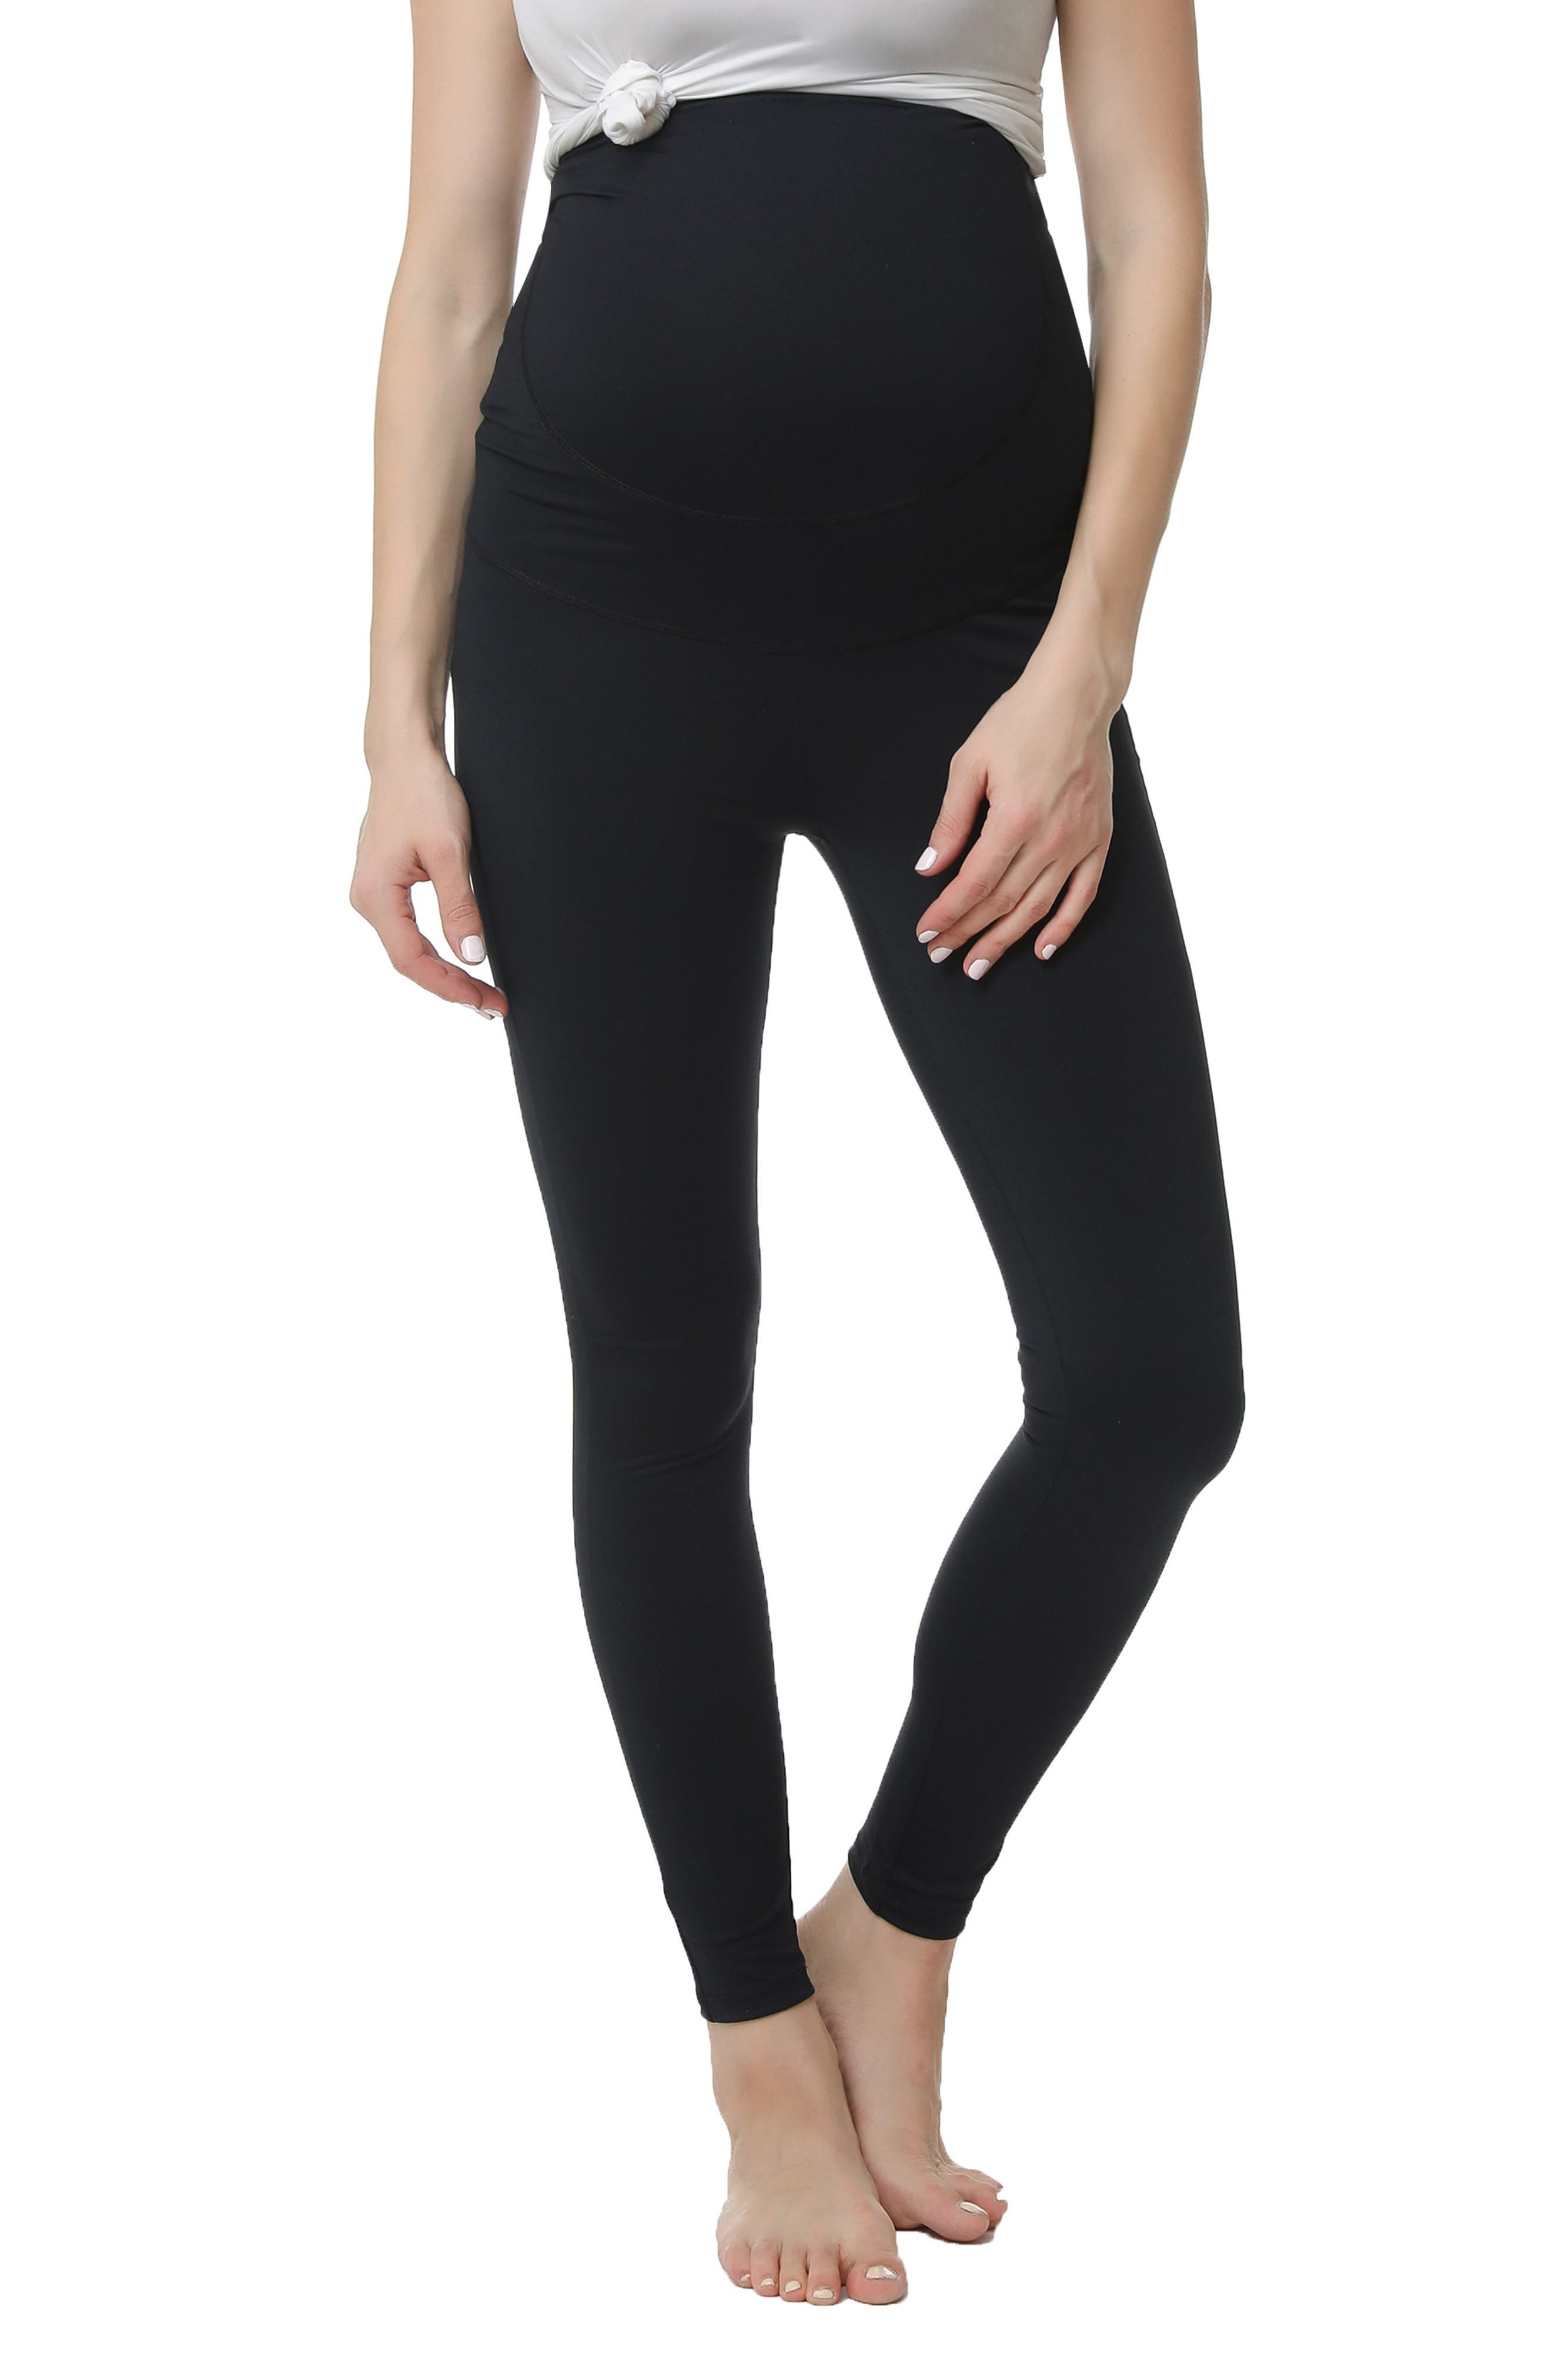 Max Belly Support Maternity Leggings